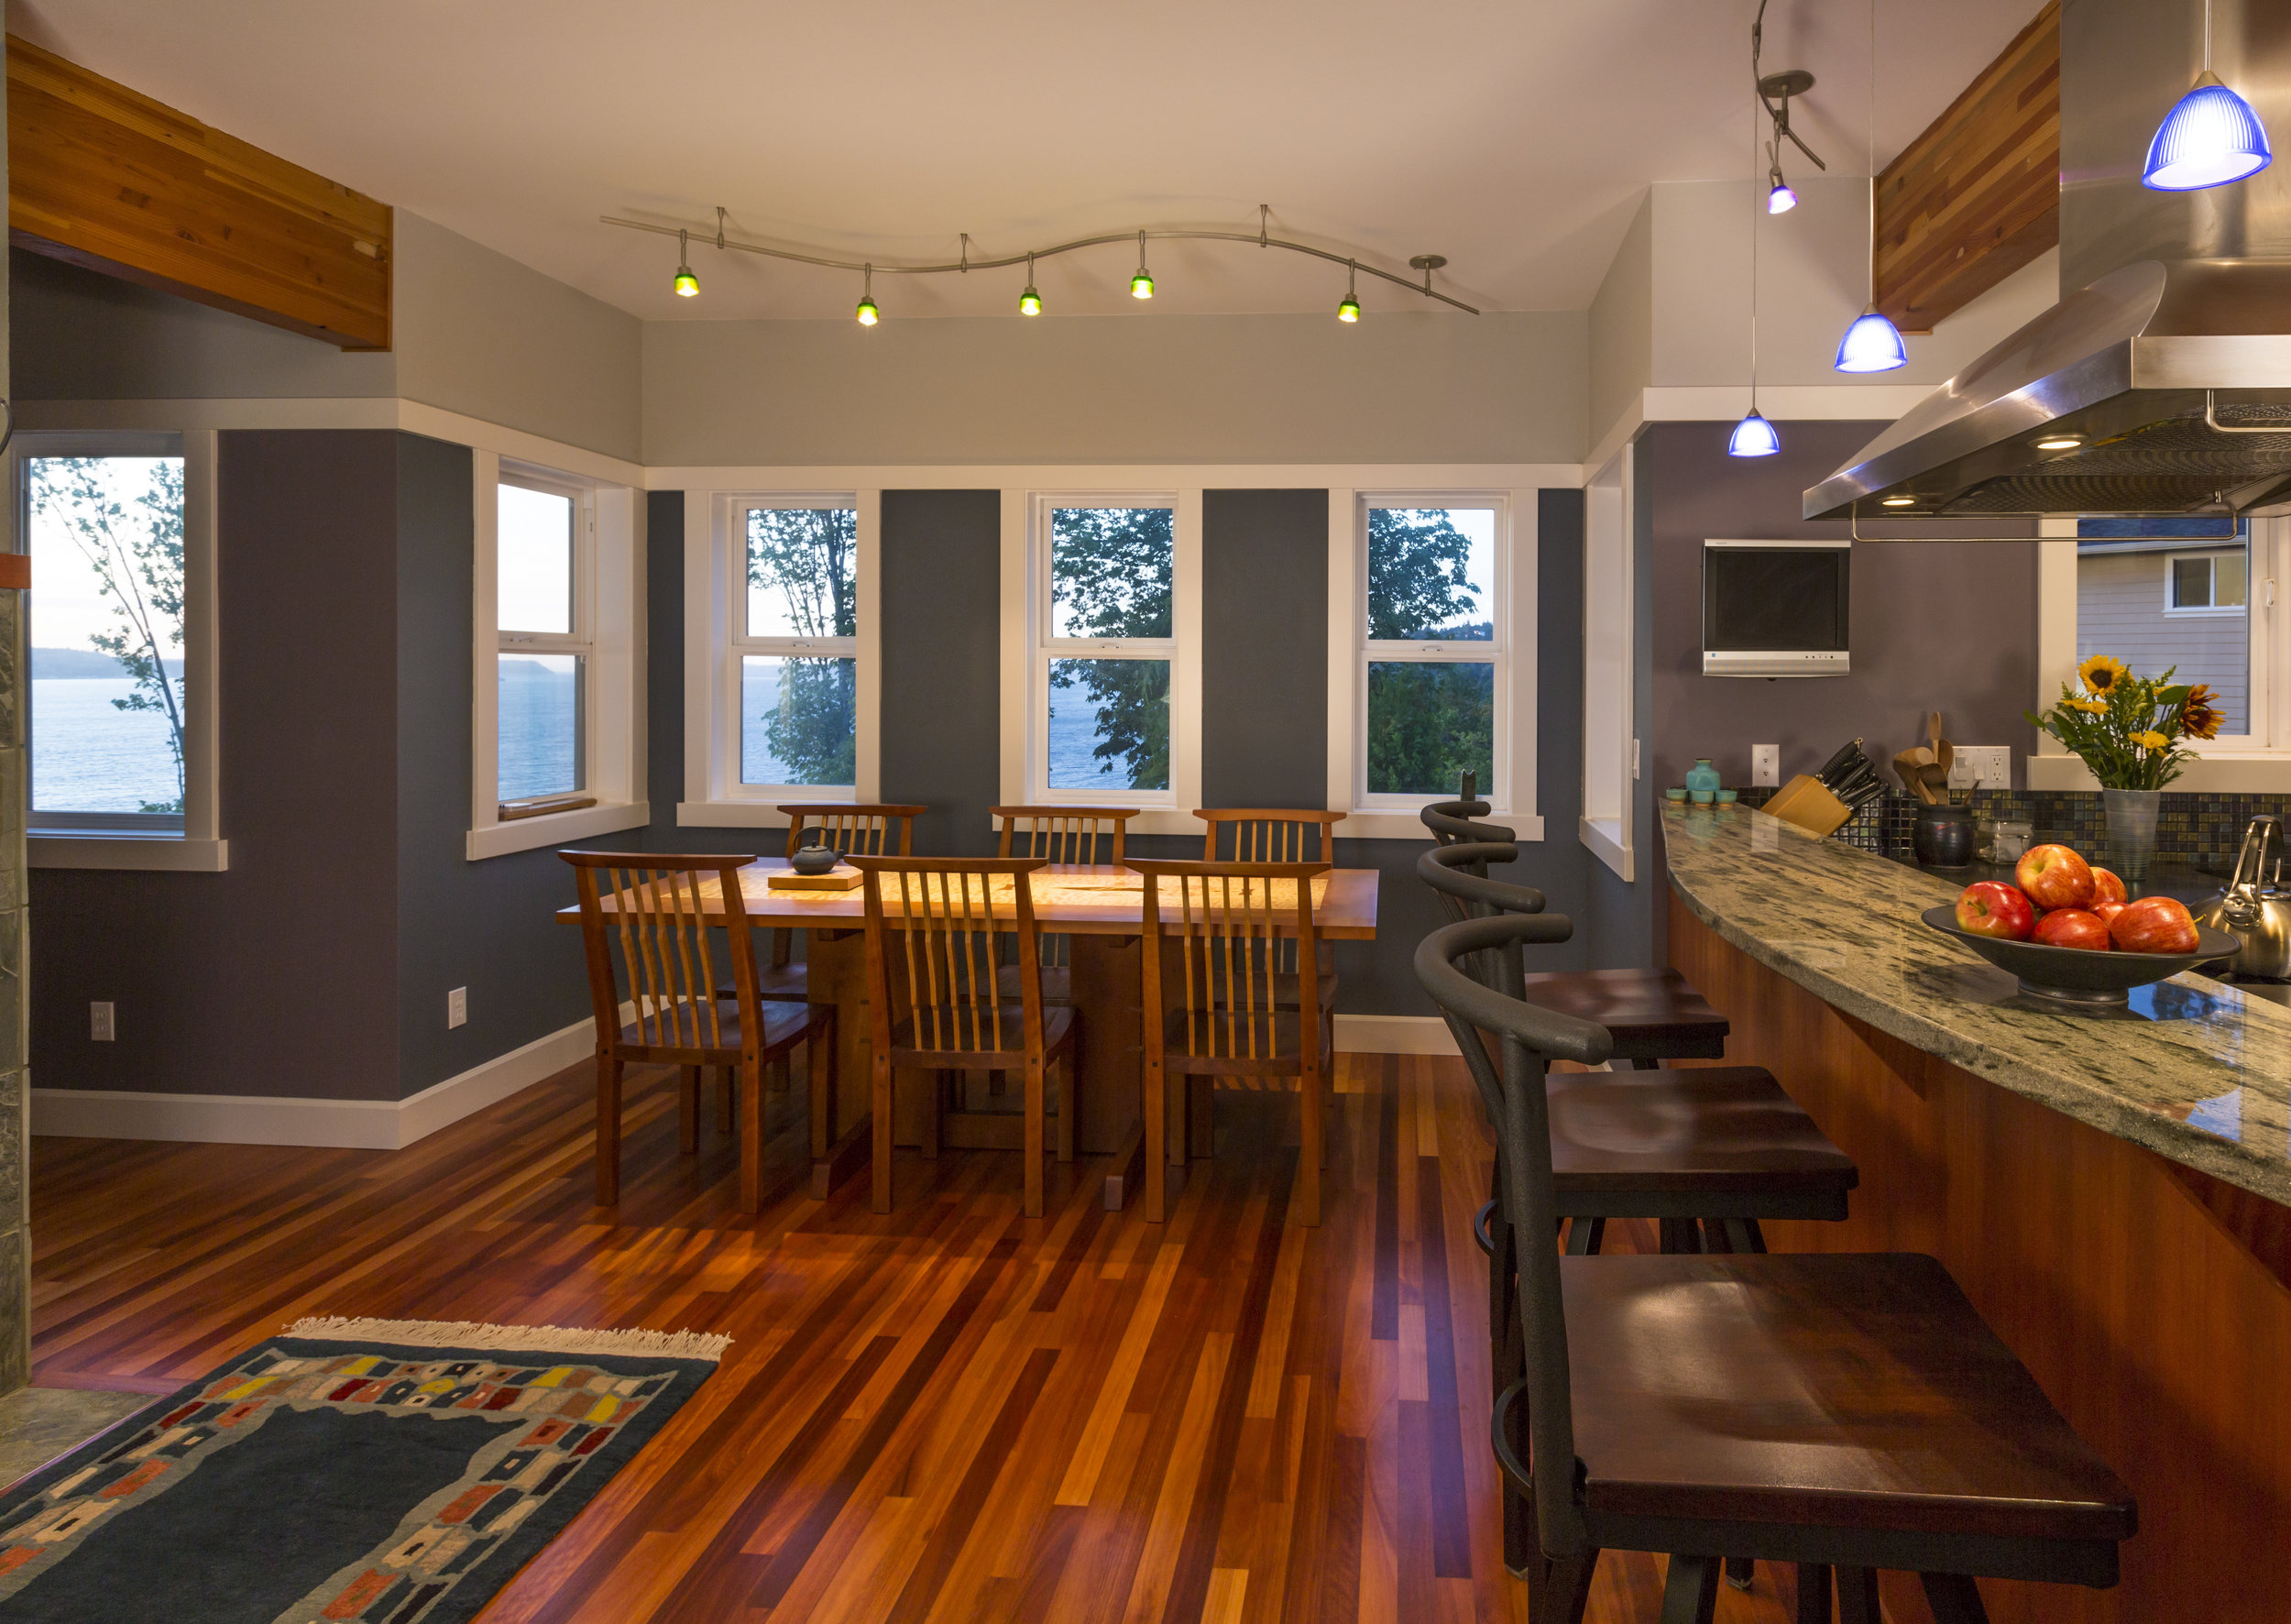 Kitchen breakfast bar and dining area table and chairs with wood floors, granite countertops, accent lighting and view windows in contemporary upscale home interior